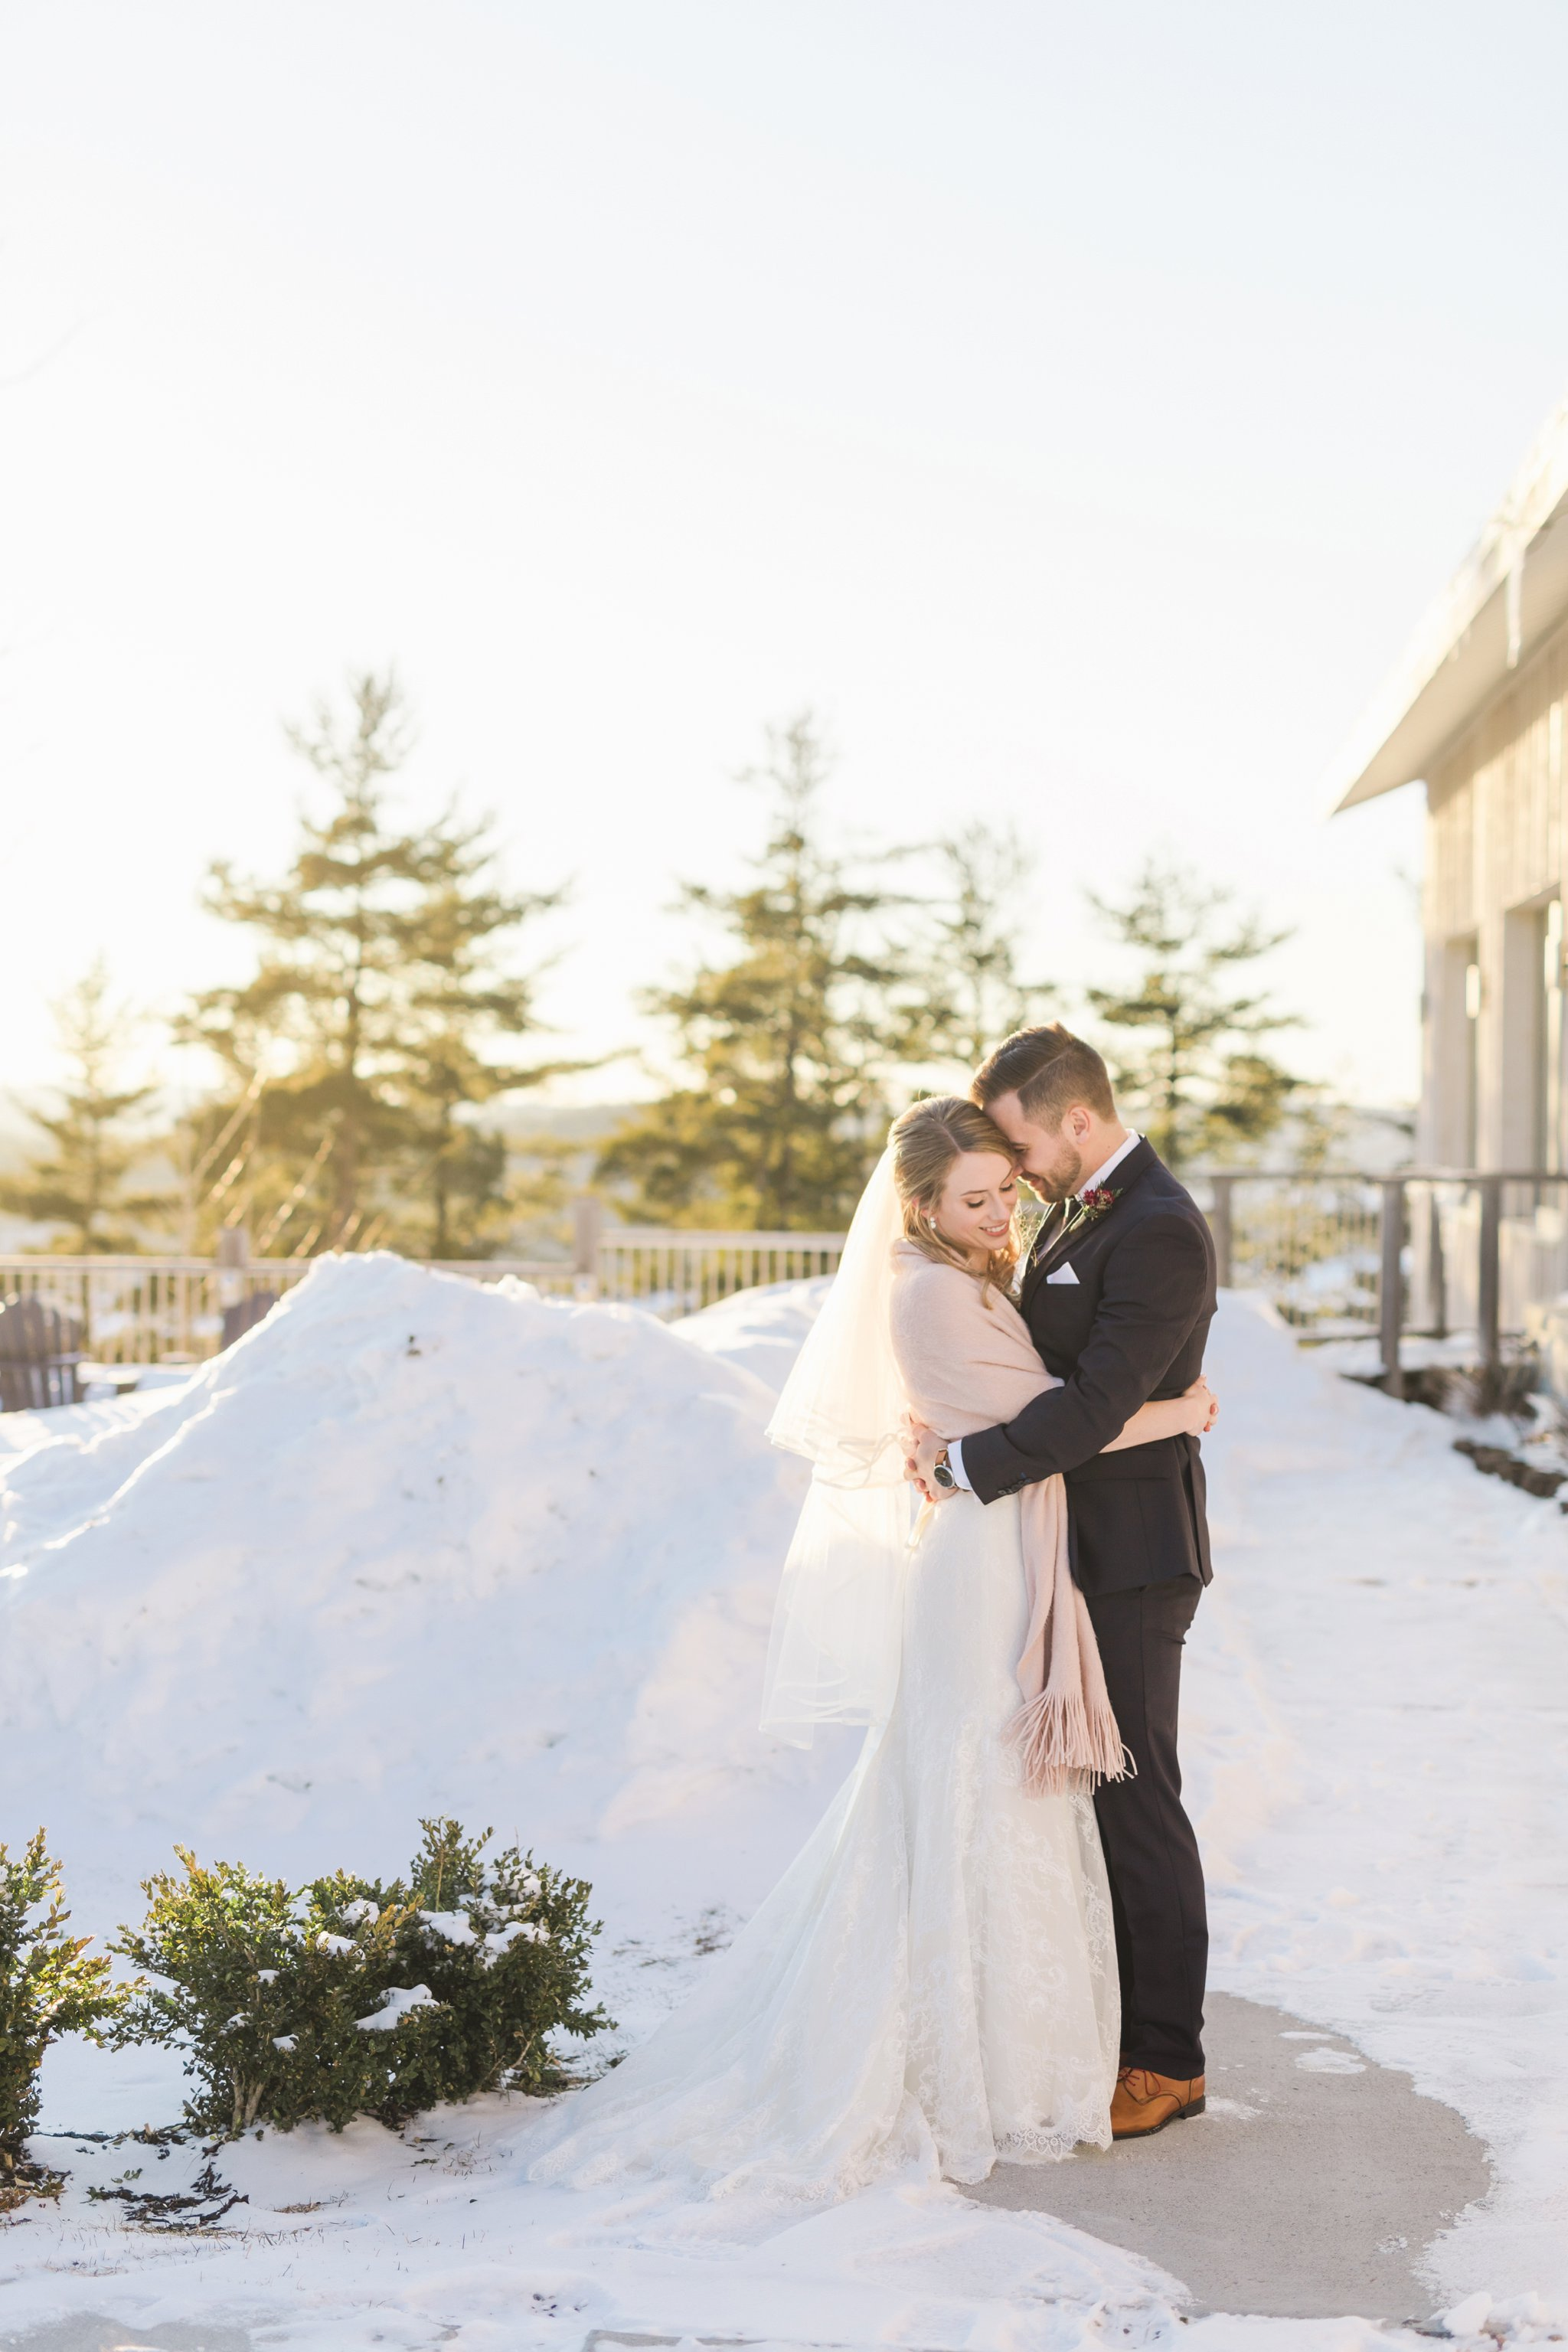 Golden hour portraits at the Winter wedding at Le Belvedere